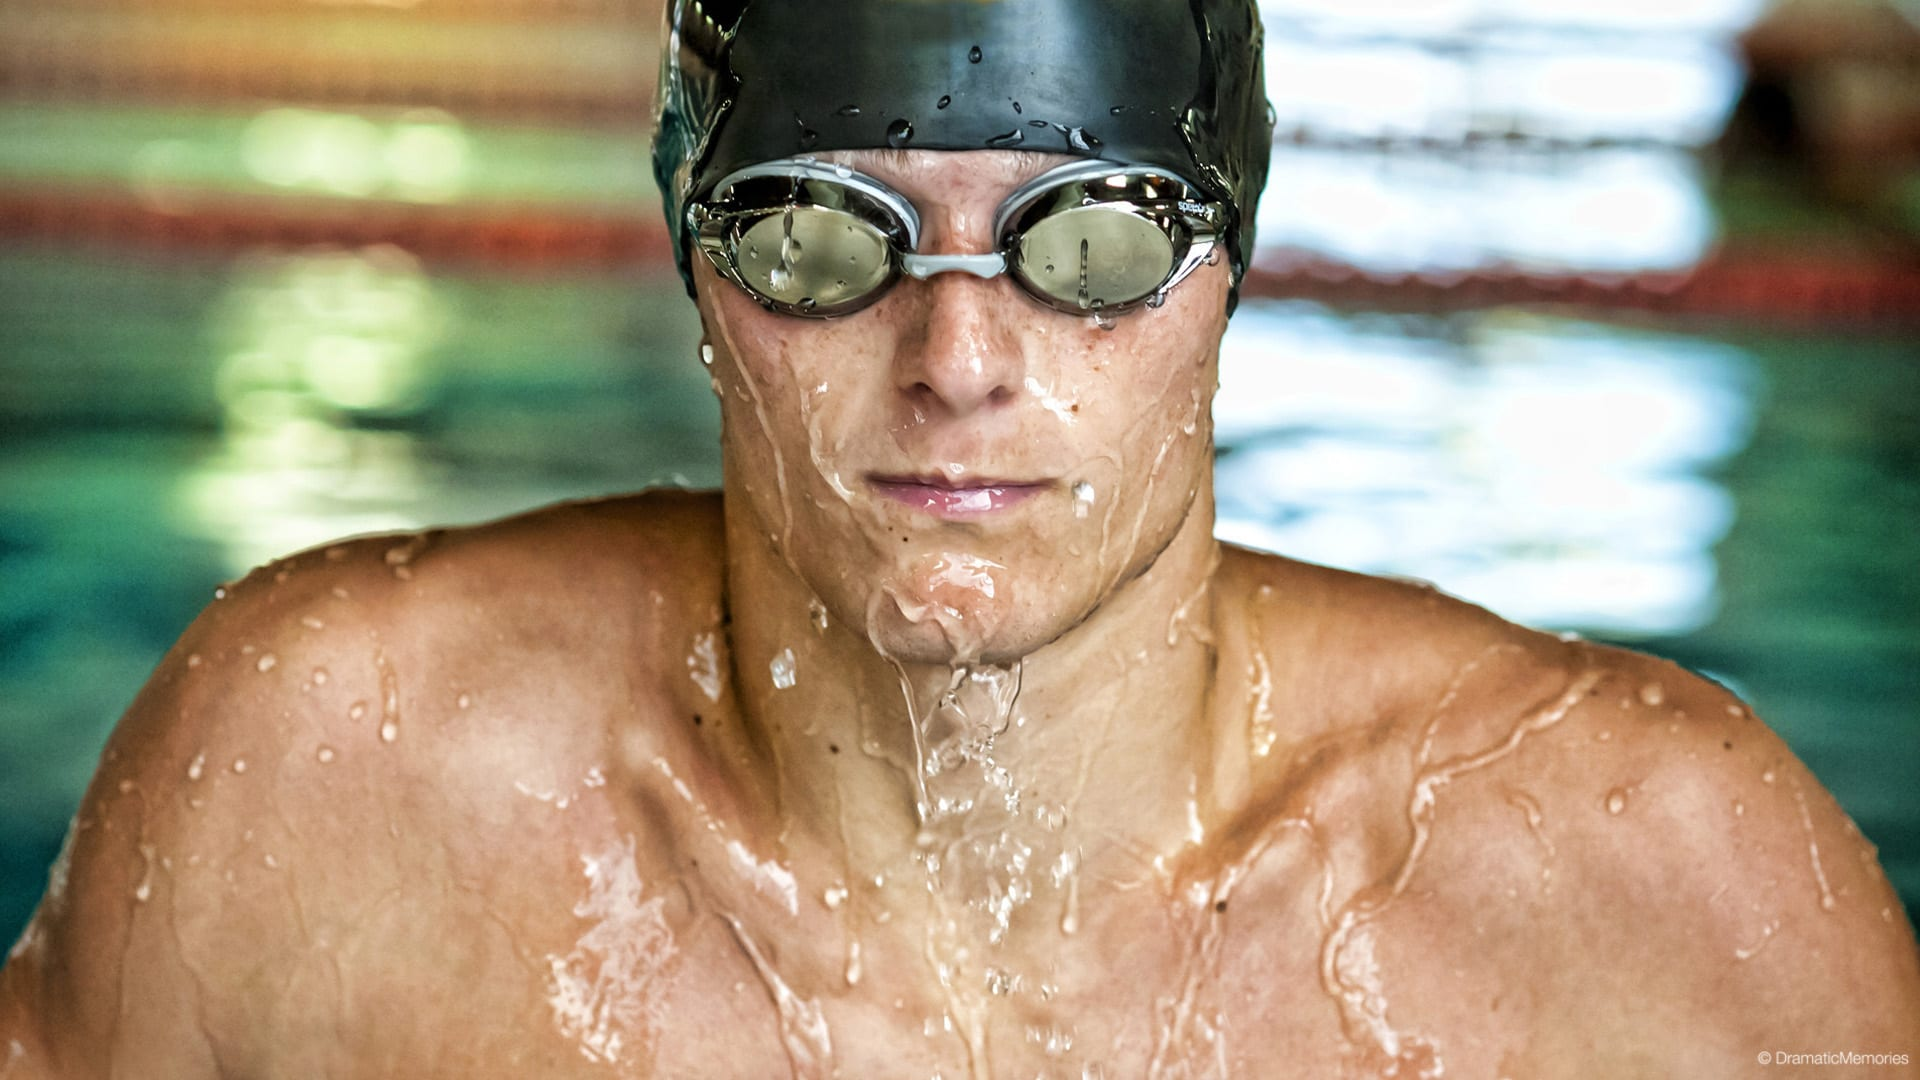 high school swimmer coming out of the pool with goggles on